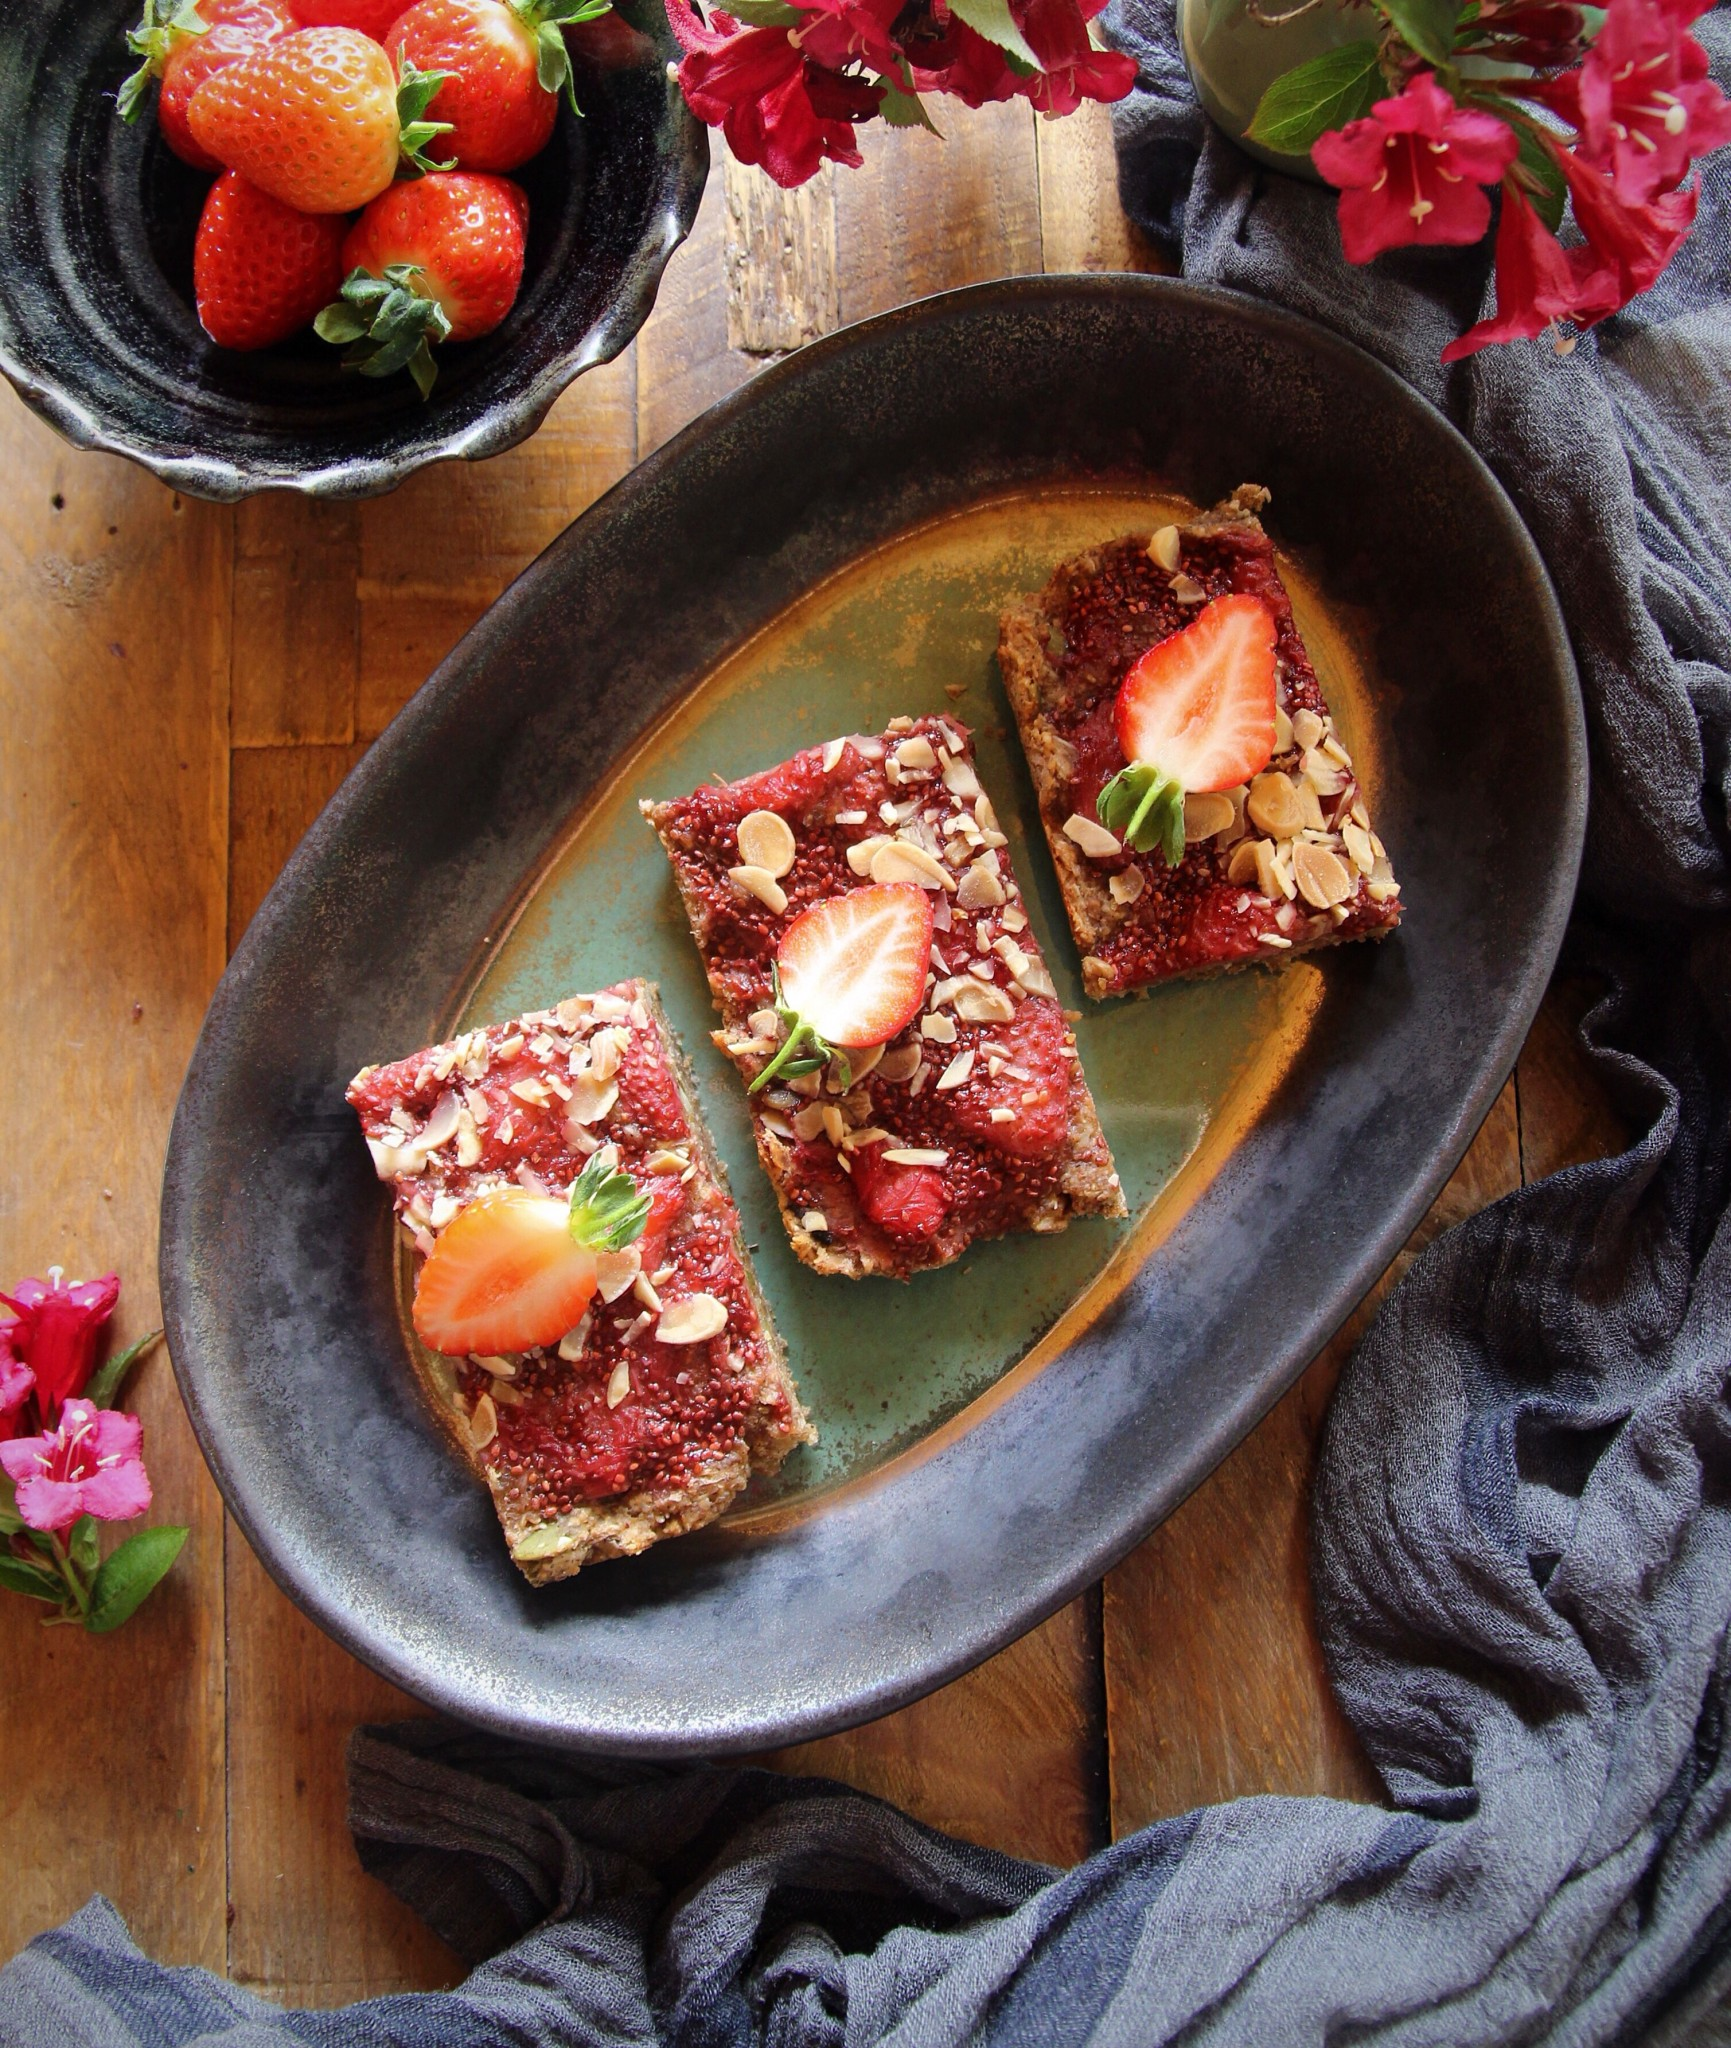 Superfood breakfast bars with strawberry chia jam for for Superfood bar